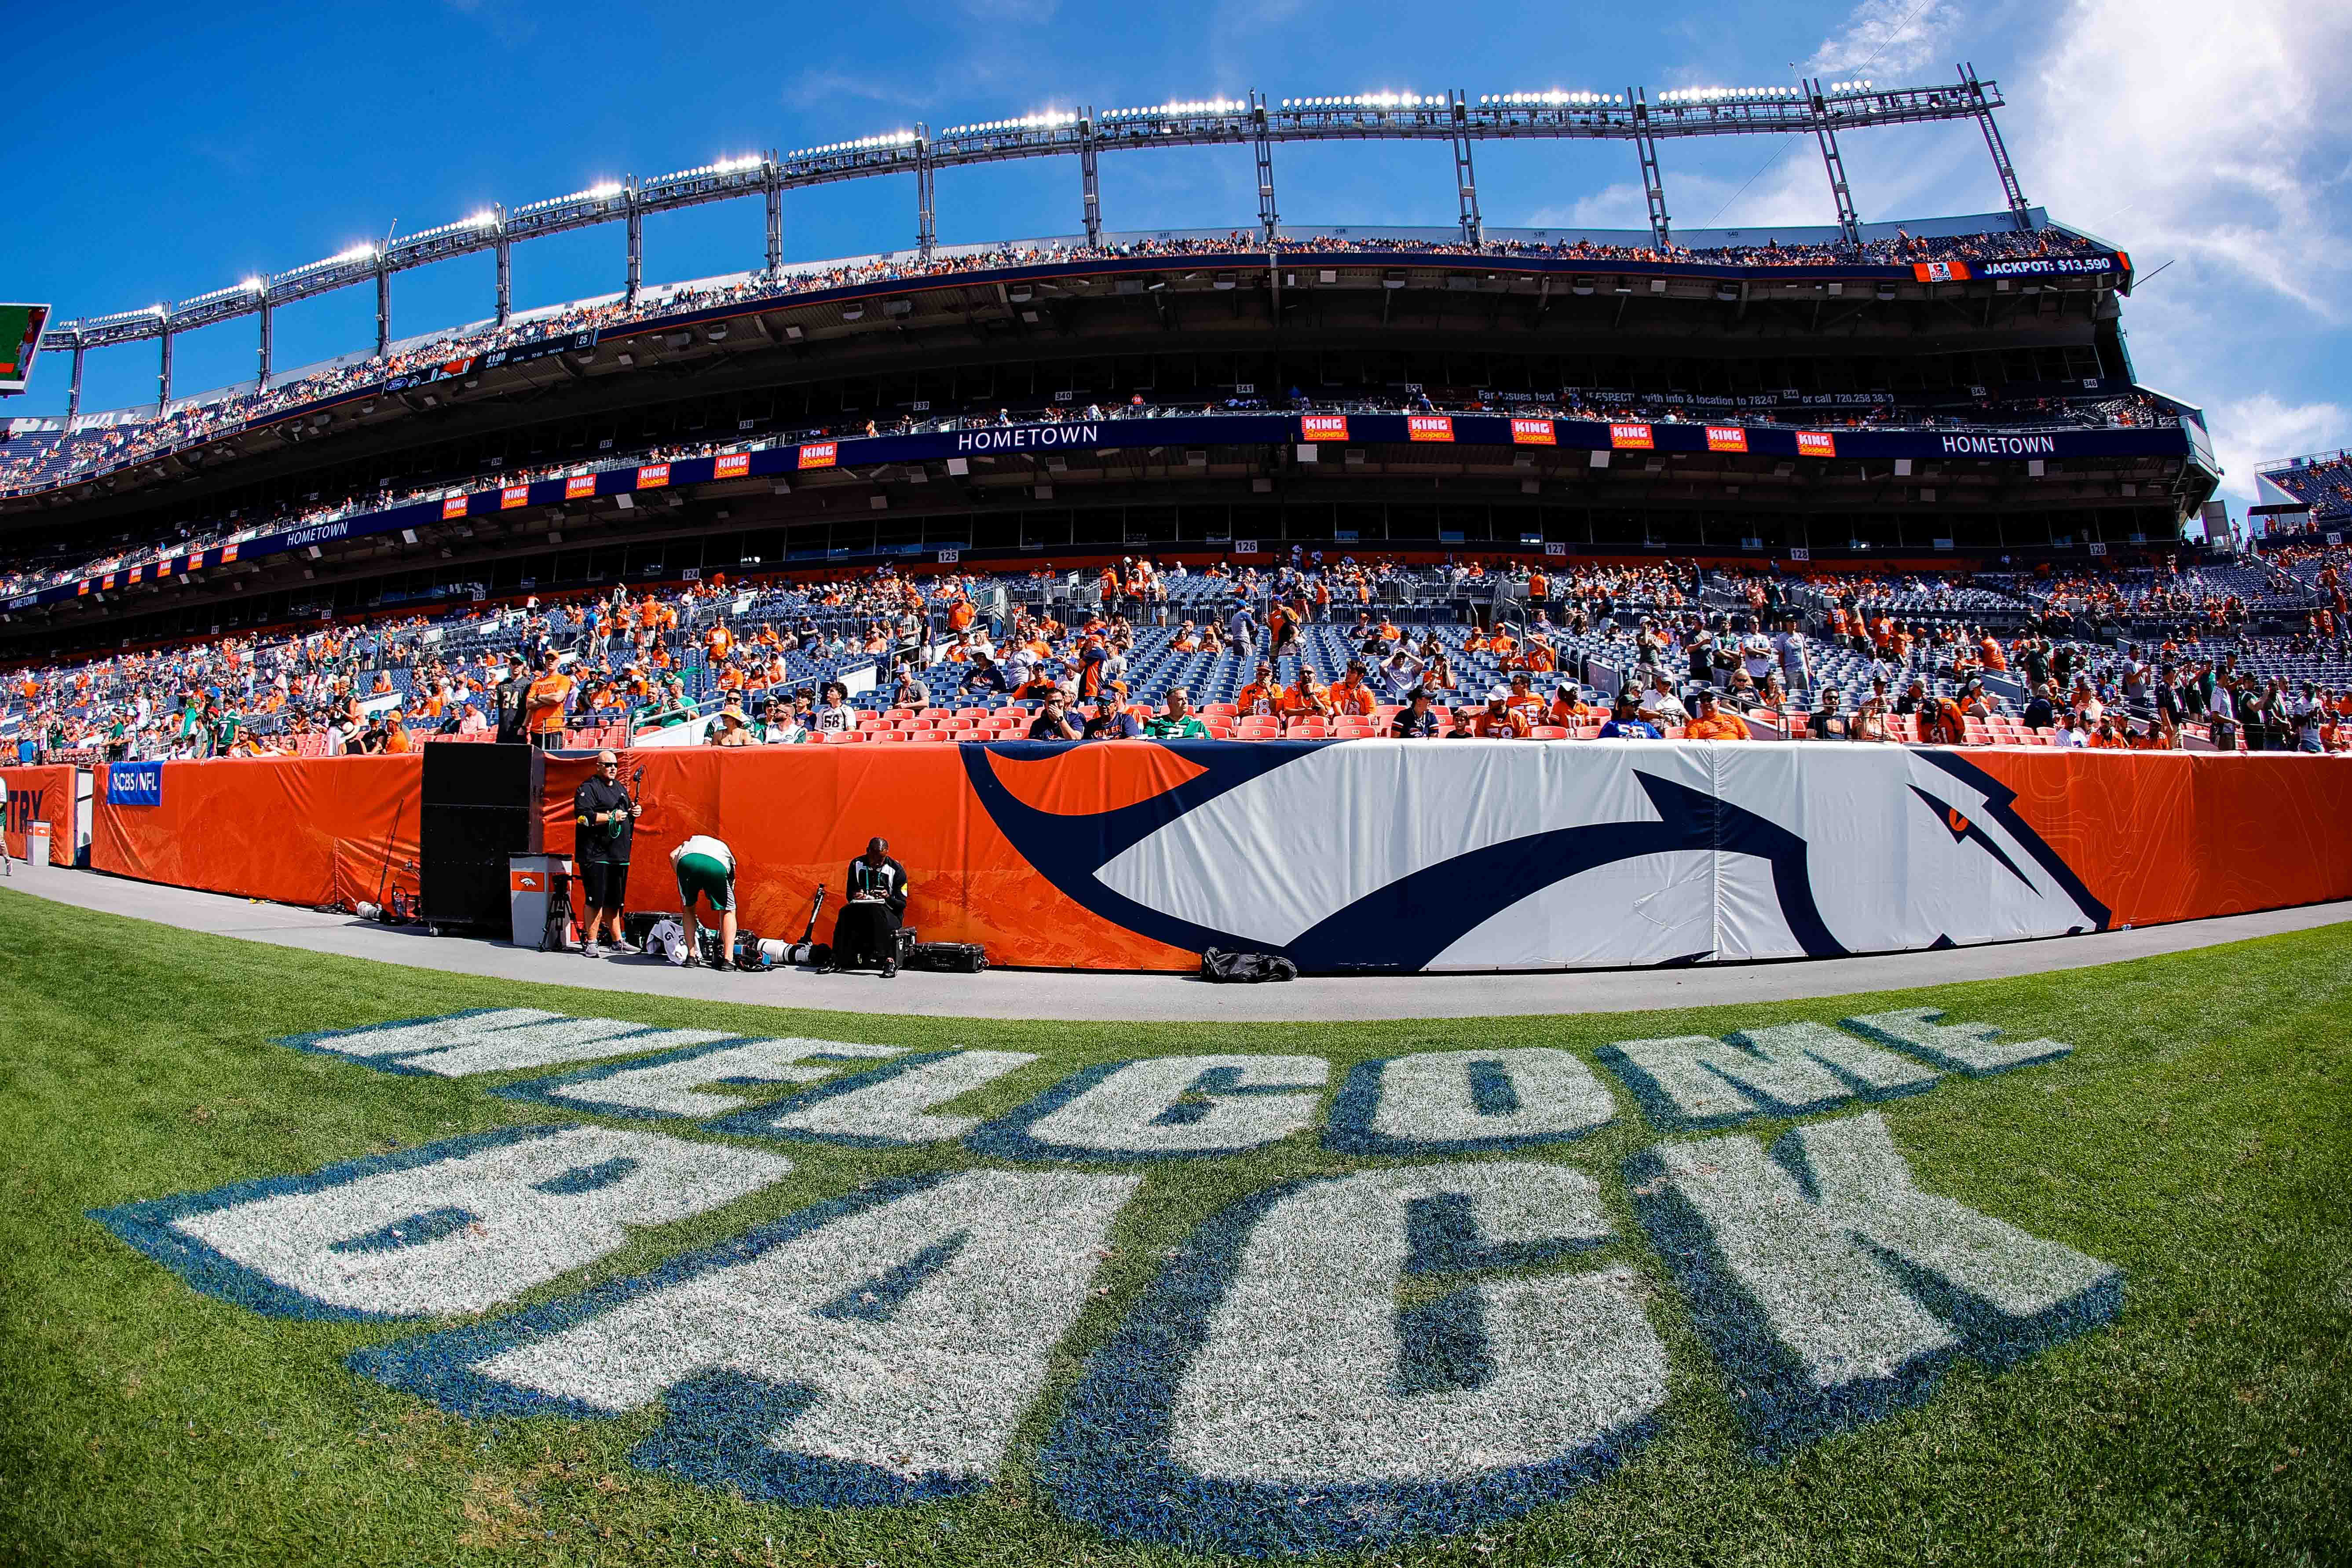 A general view before the game between the Denver Broncos and the New York Jets at Empower Field at Mile High.